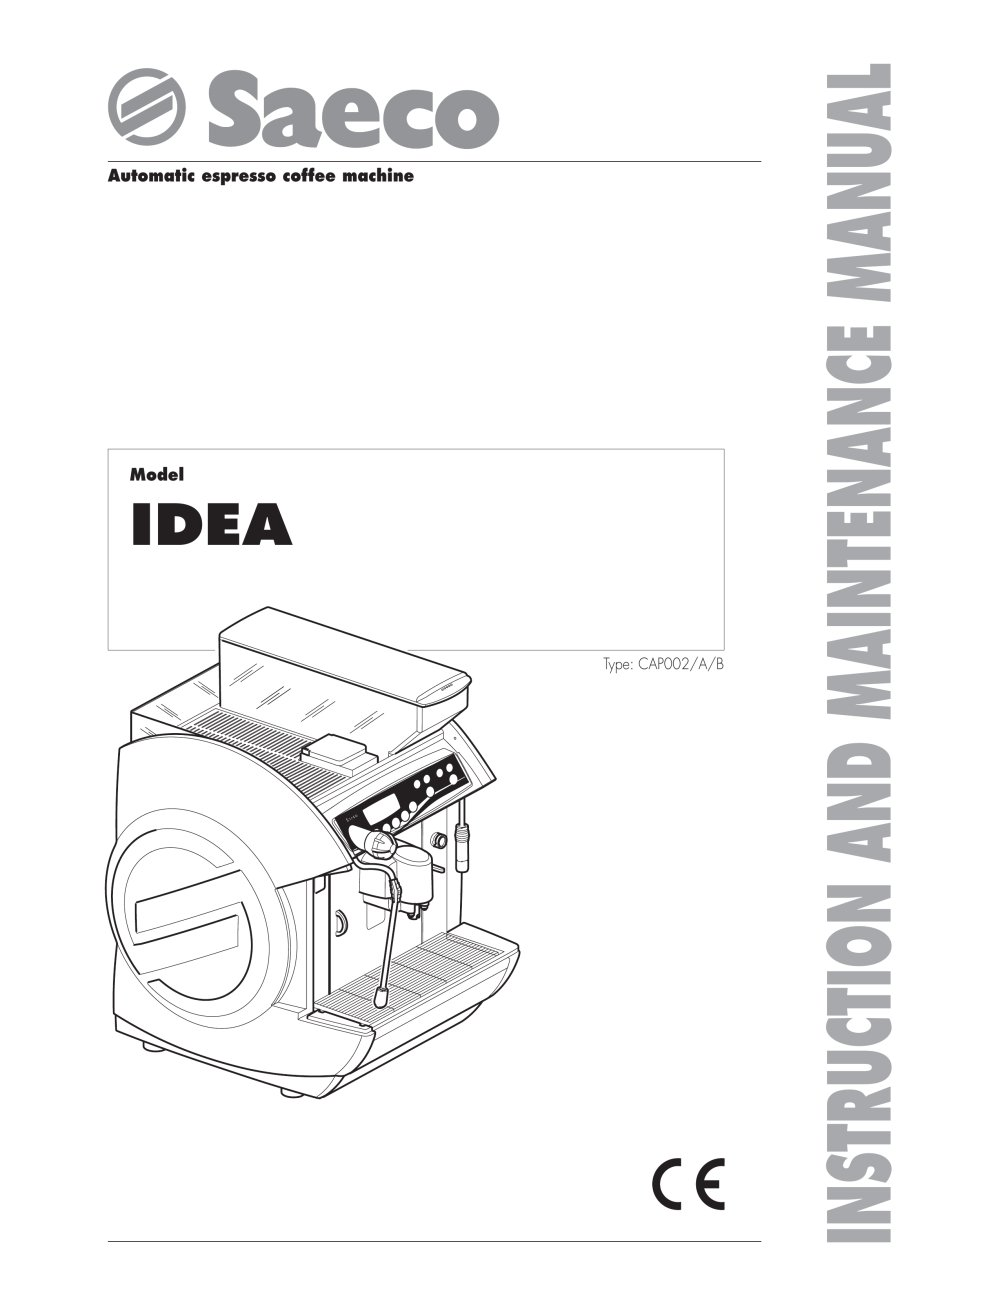 Xoro hsd 6100 user manual